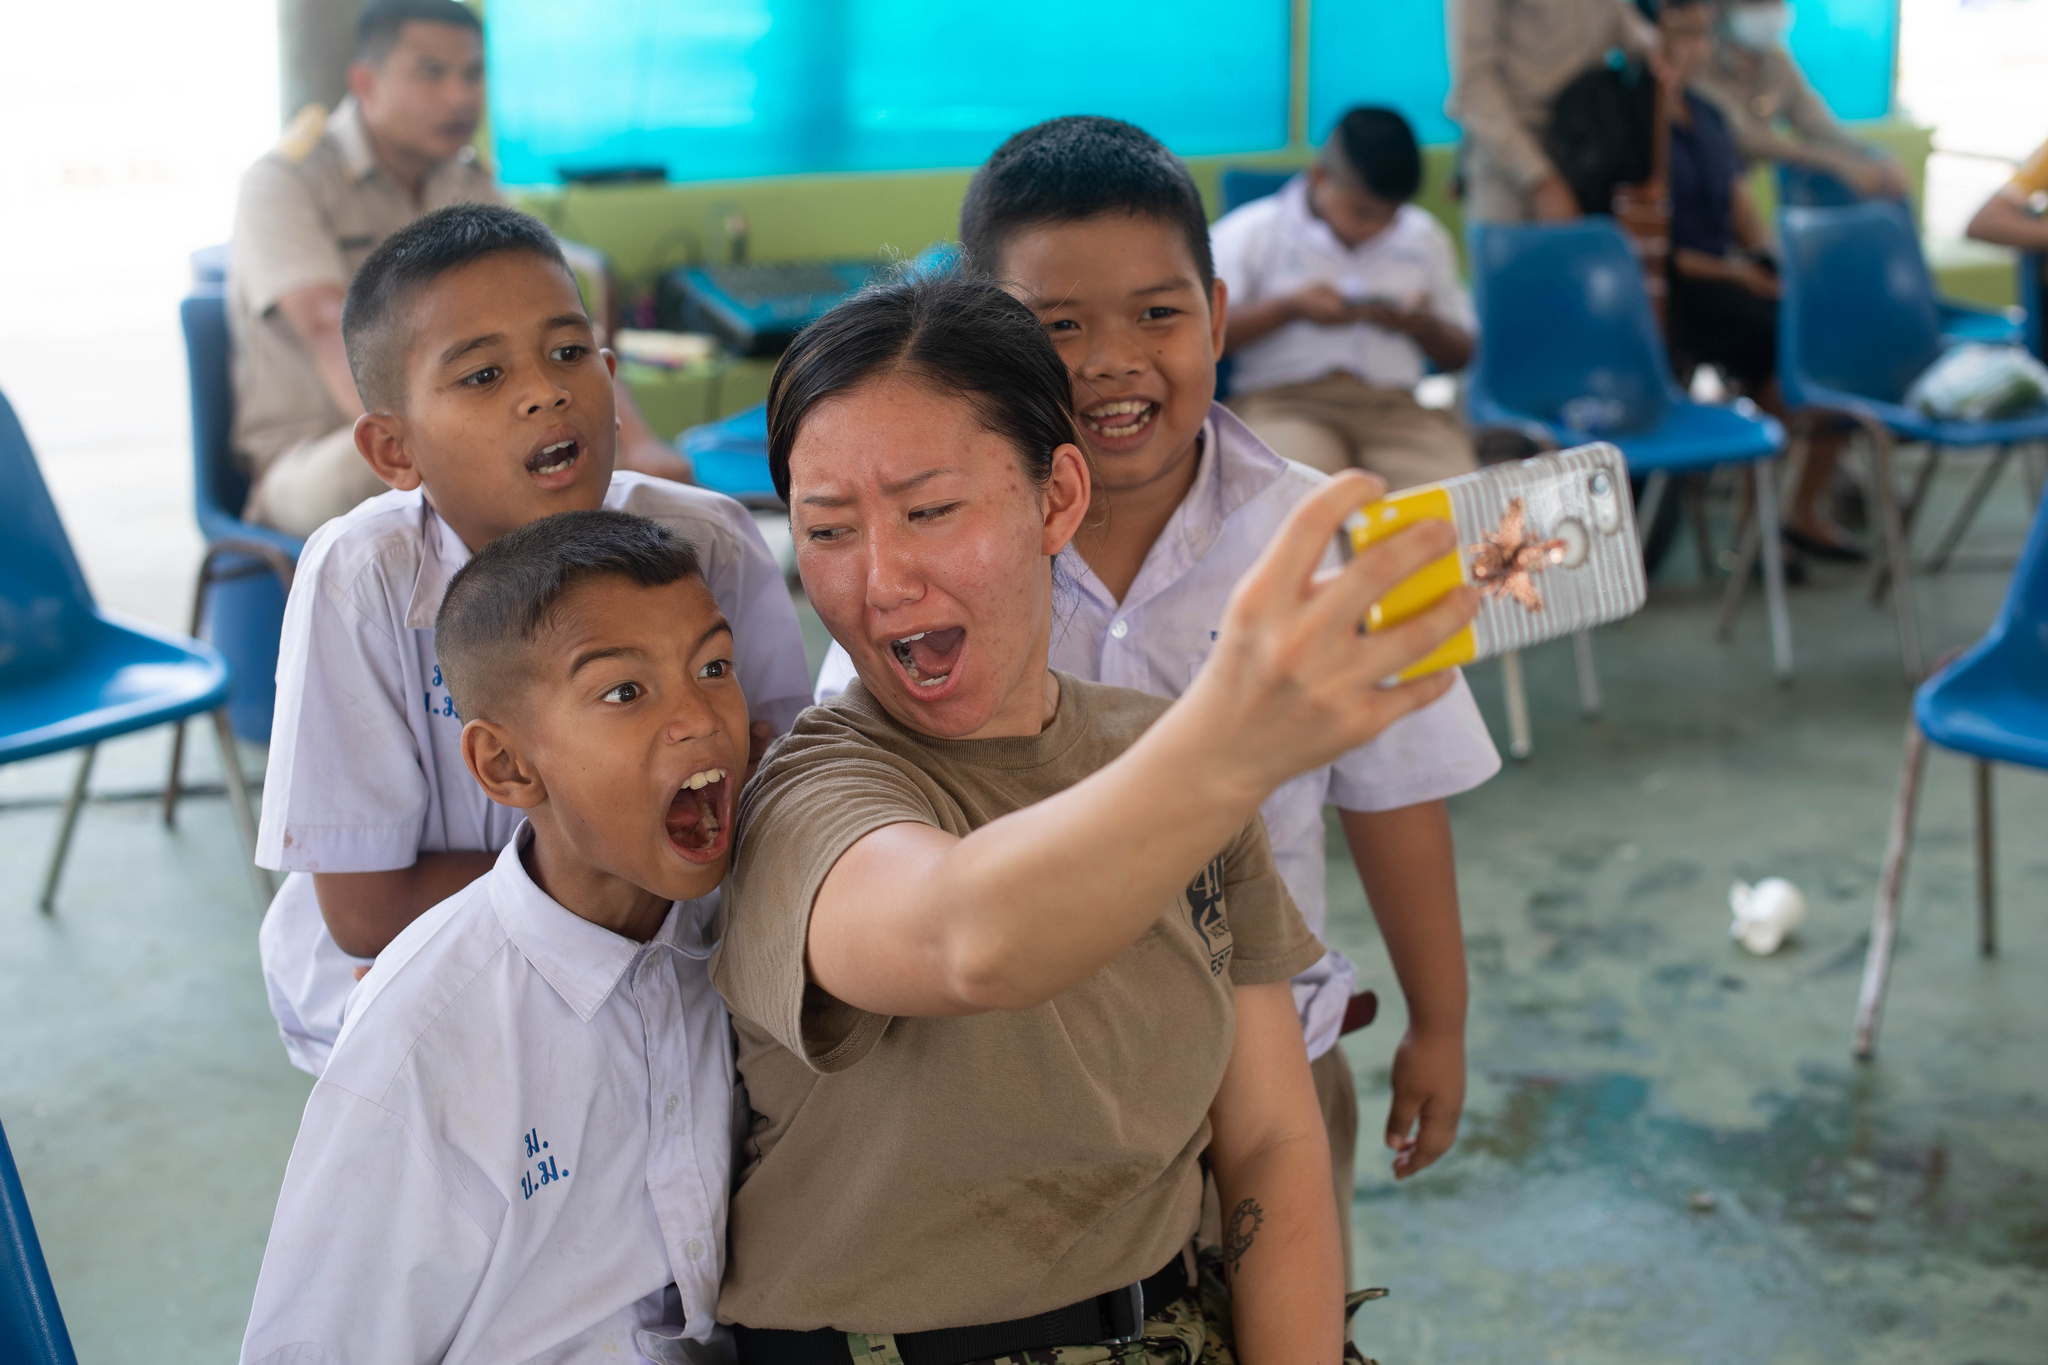 Navy Aviation Machinist's Mate 2nd Class Txi Txi Mee Lee, from Oshkosh, Wis., poses for a selfie with children Feb. 11, 2019, during a community outreach event at the Ban Banglamung School in in Laem Chabang, Thailand. Sailors assigned to the John C. Stennis Carrier Strike Group volunteered at the Ban Banglamung School during a scheduled port visit to Laem Chabang. (Mass Communication Specialist 3rd Class Grant G. Grady/Navy)